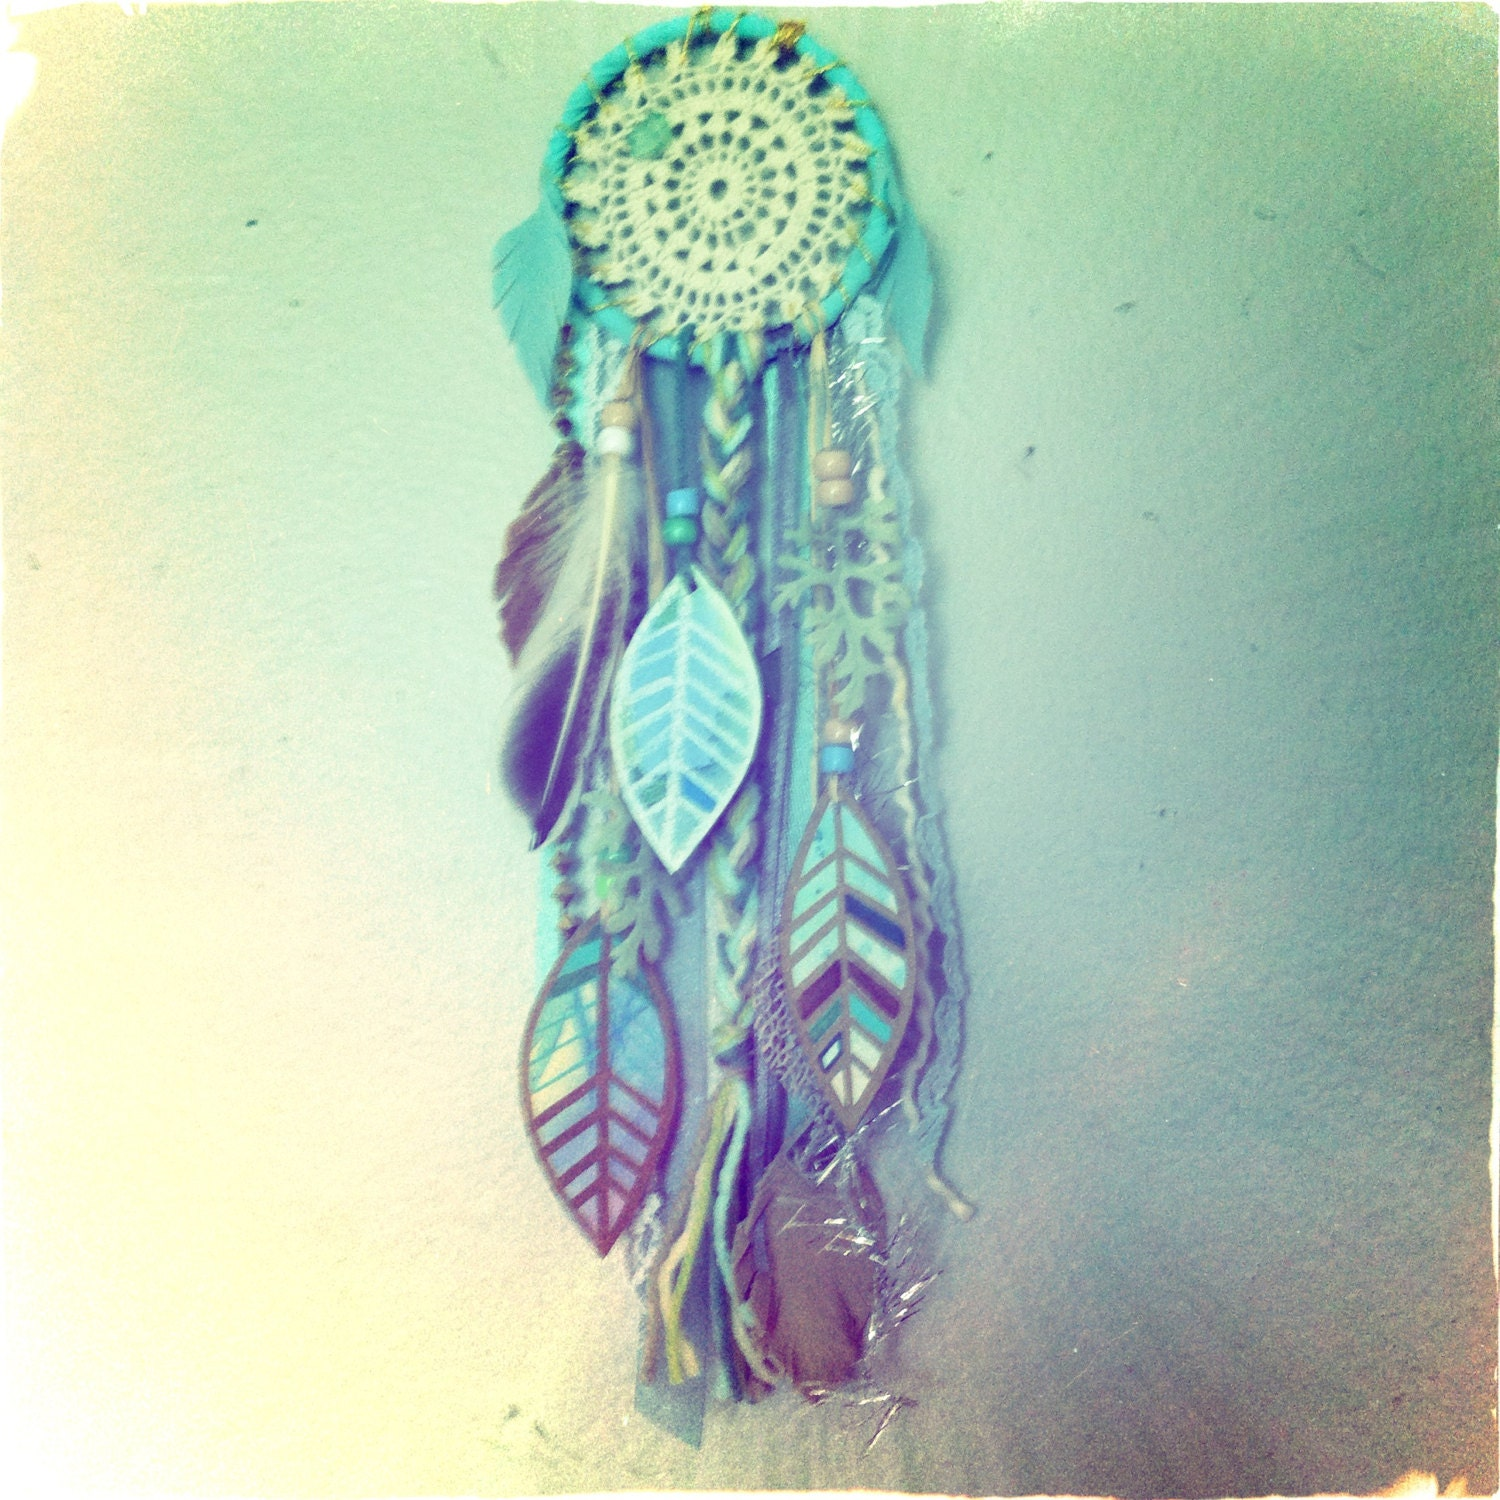 Aqua Dream Little Dreamcatcher with watercolor feathers and